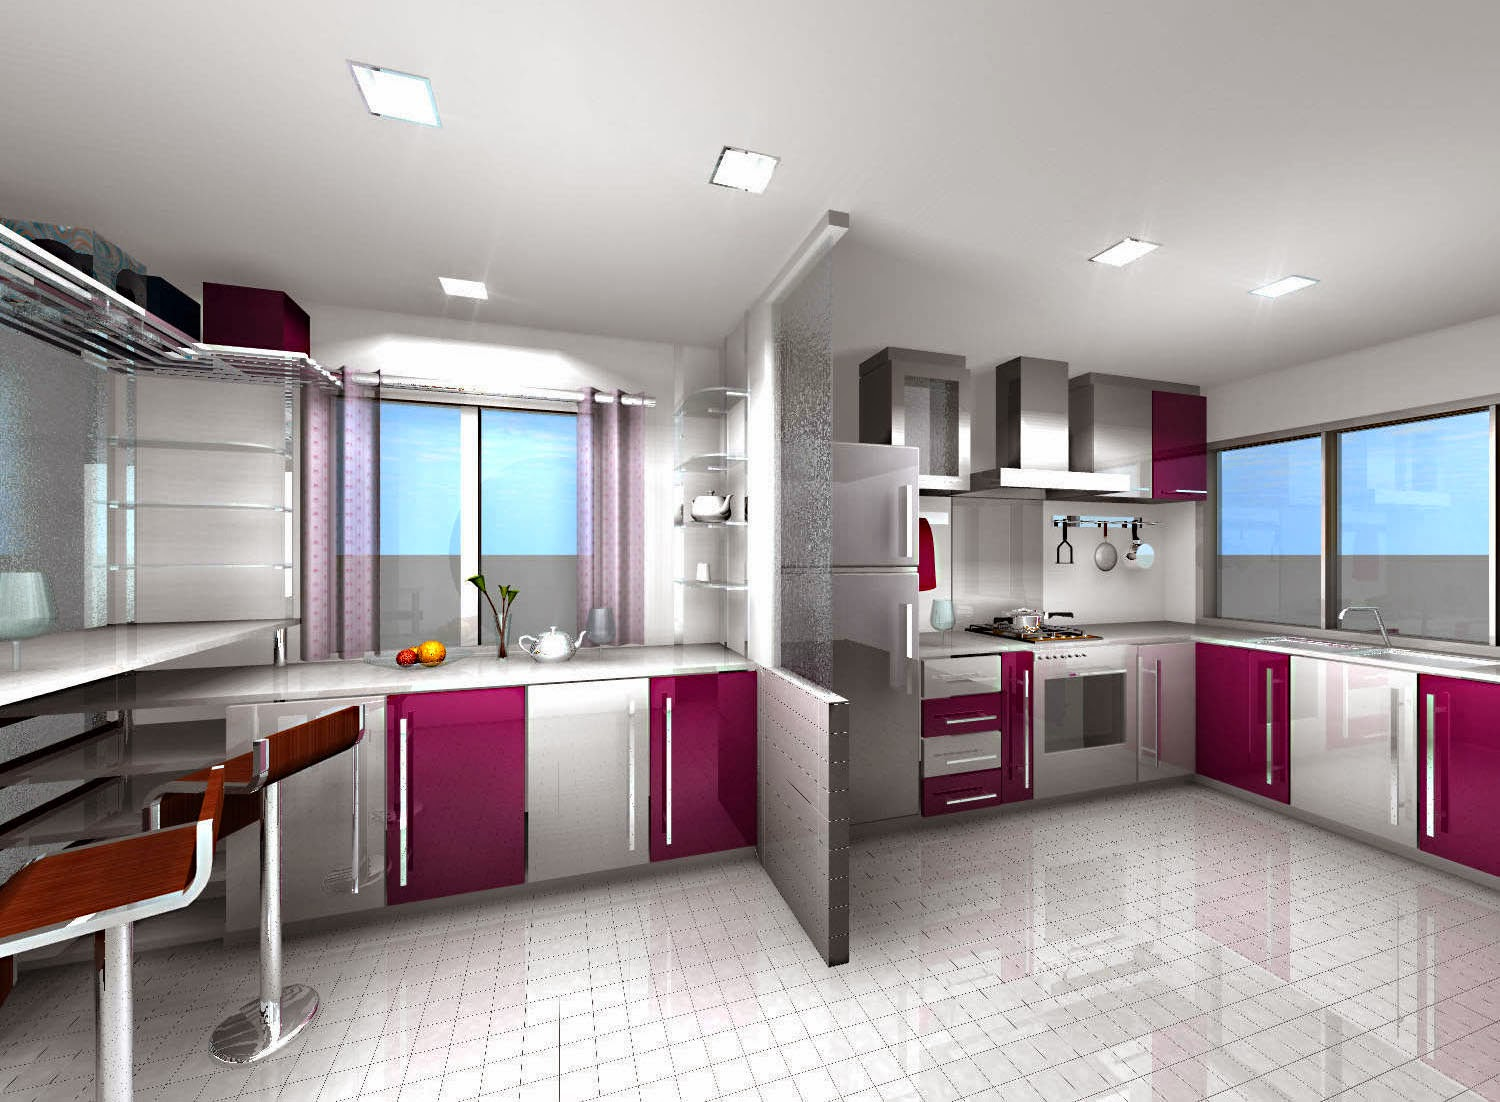 Well Tha S All Our References From Us About Paint Color Which Is Suitable Fro Kitchen Walls Hopefully Can Be Useful For Those Of You Who Are Designing